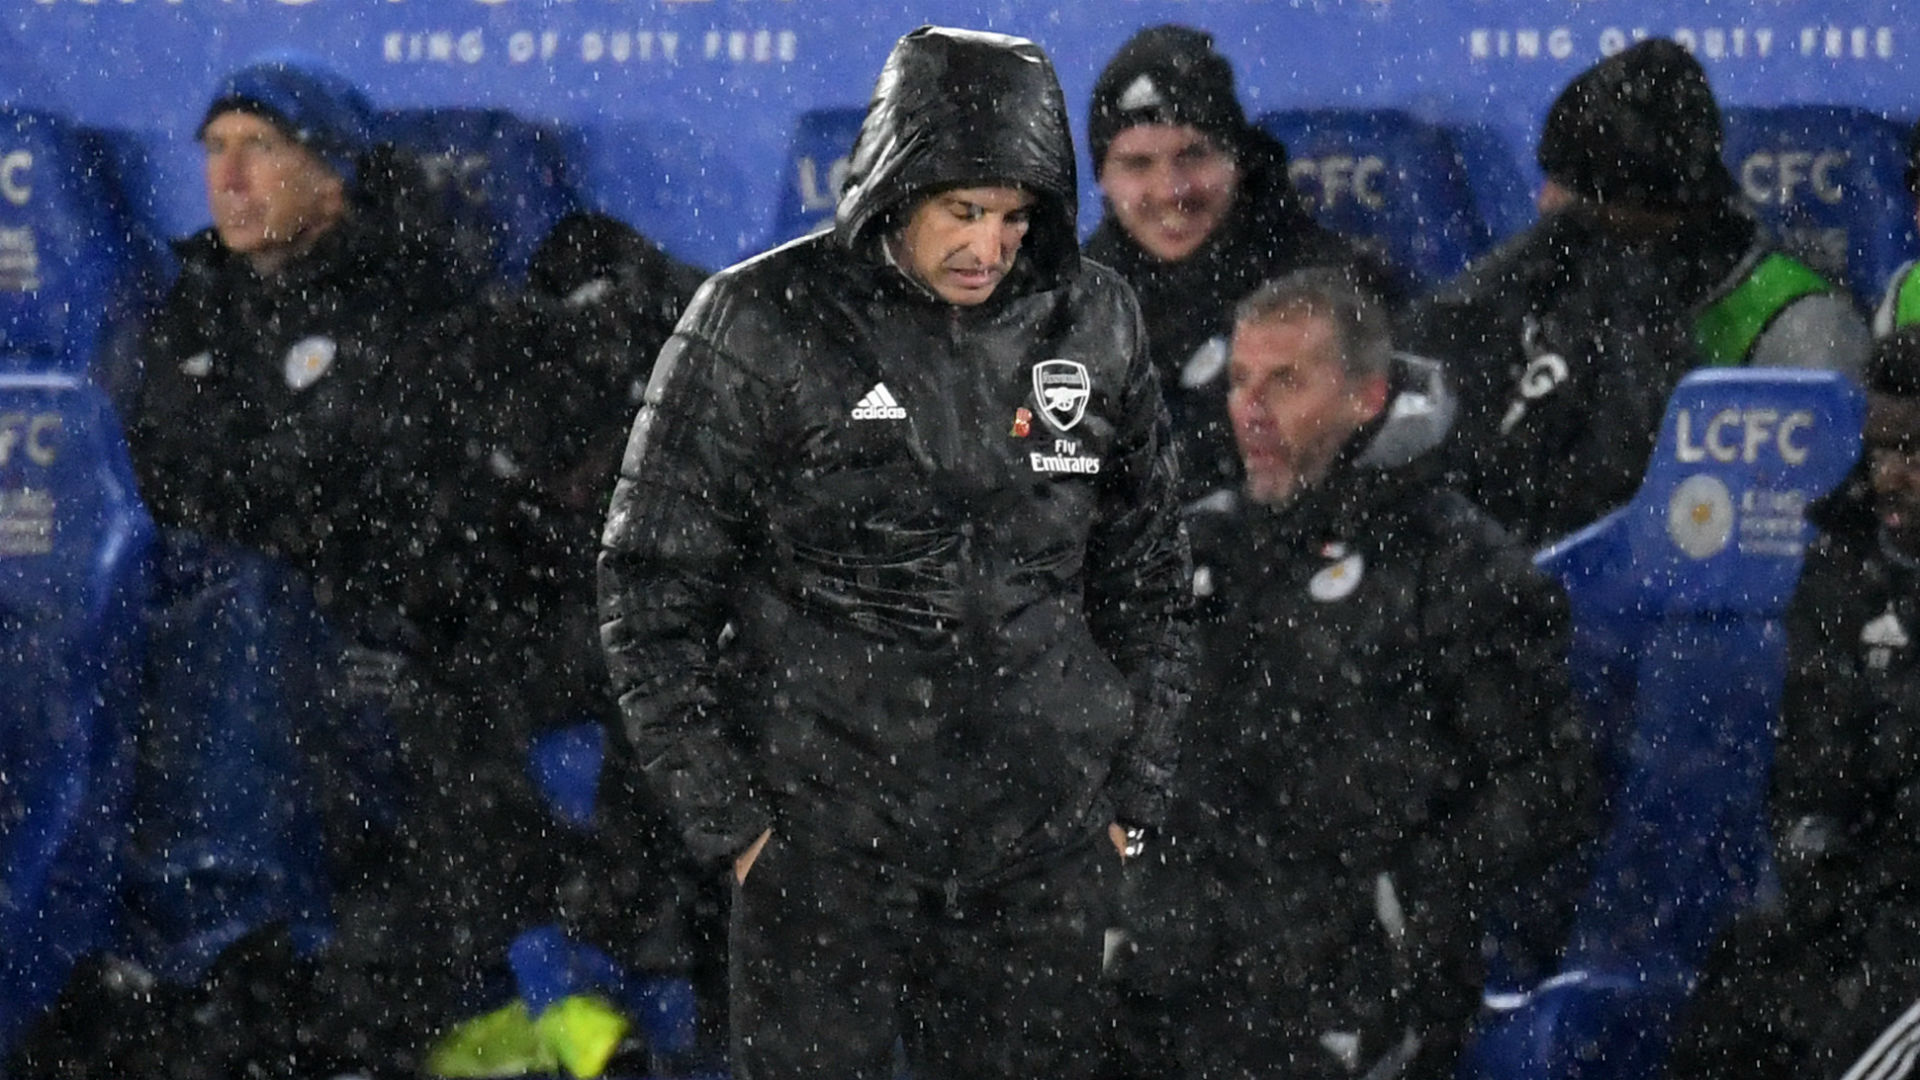 Defeat to Leicester City deepened Arsenal's misery, but Unai Emery is still hopeful he can solve their issues.